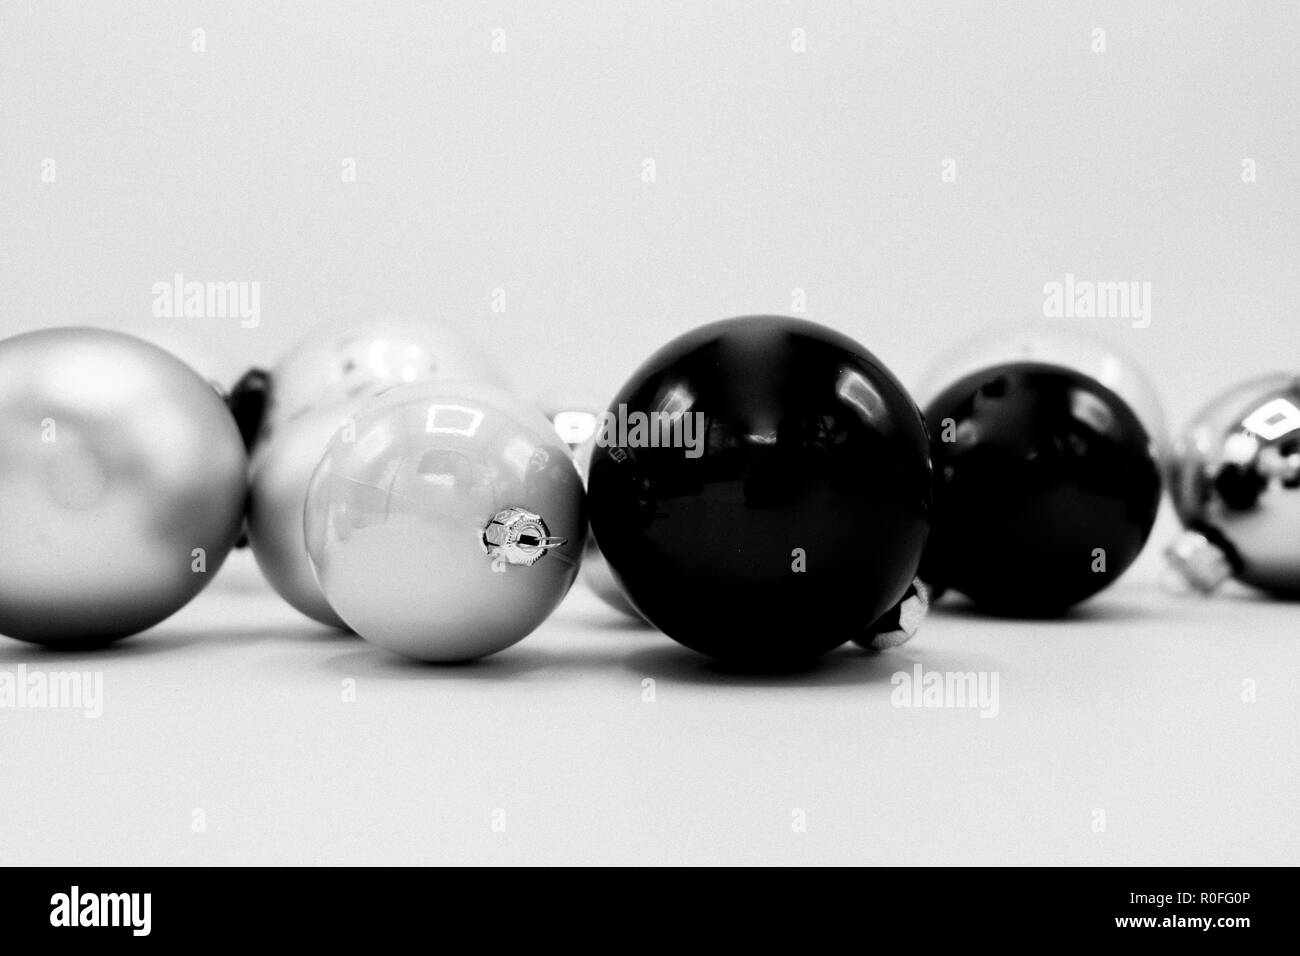 monochrome elegant christmas wallpaper background of tree decorations classy holidays image in black and white R0FG0P